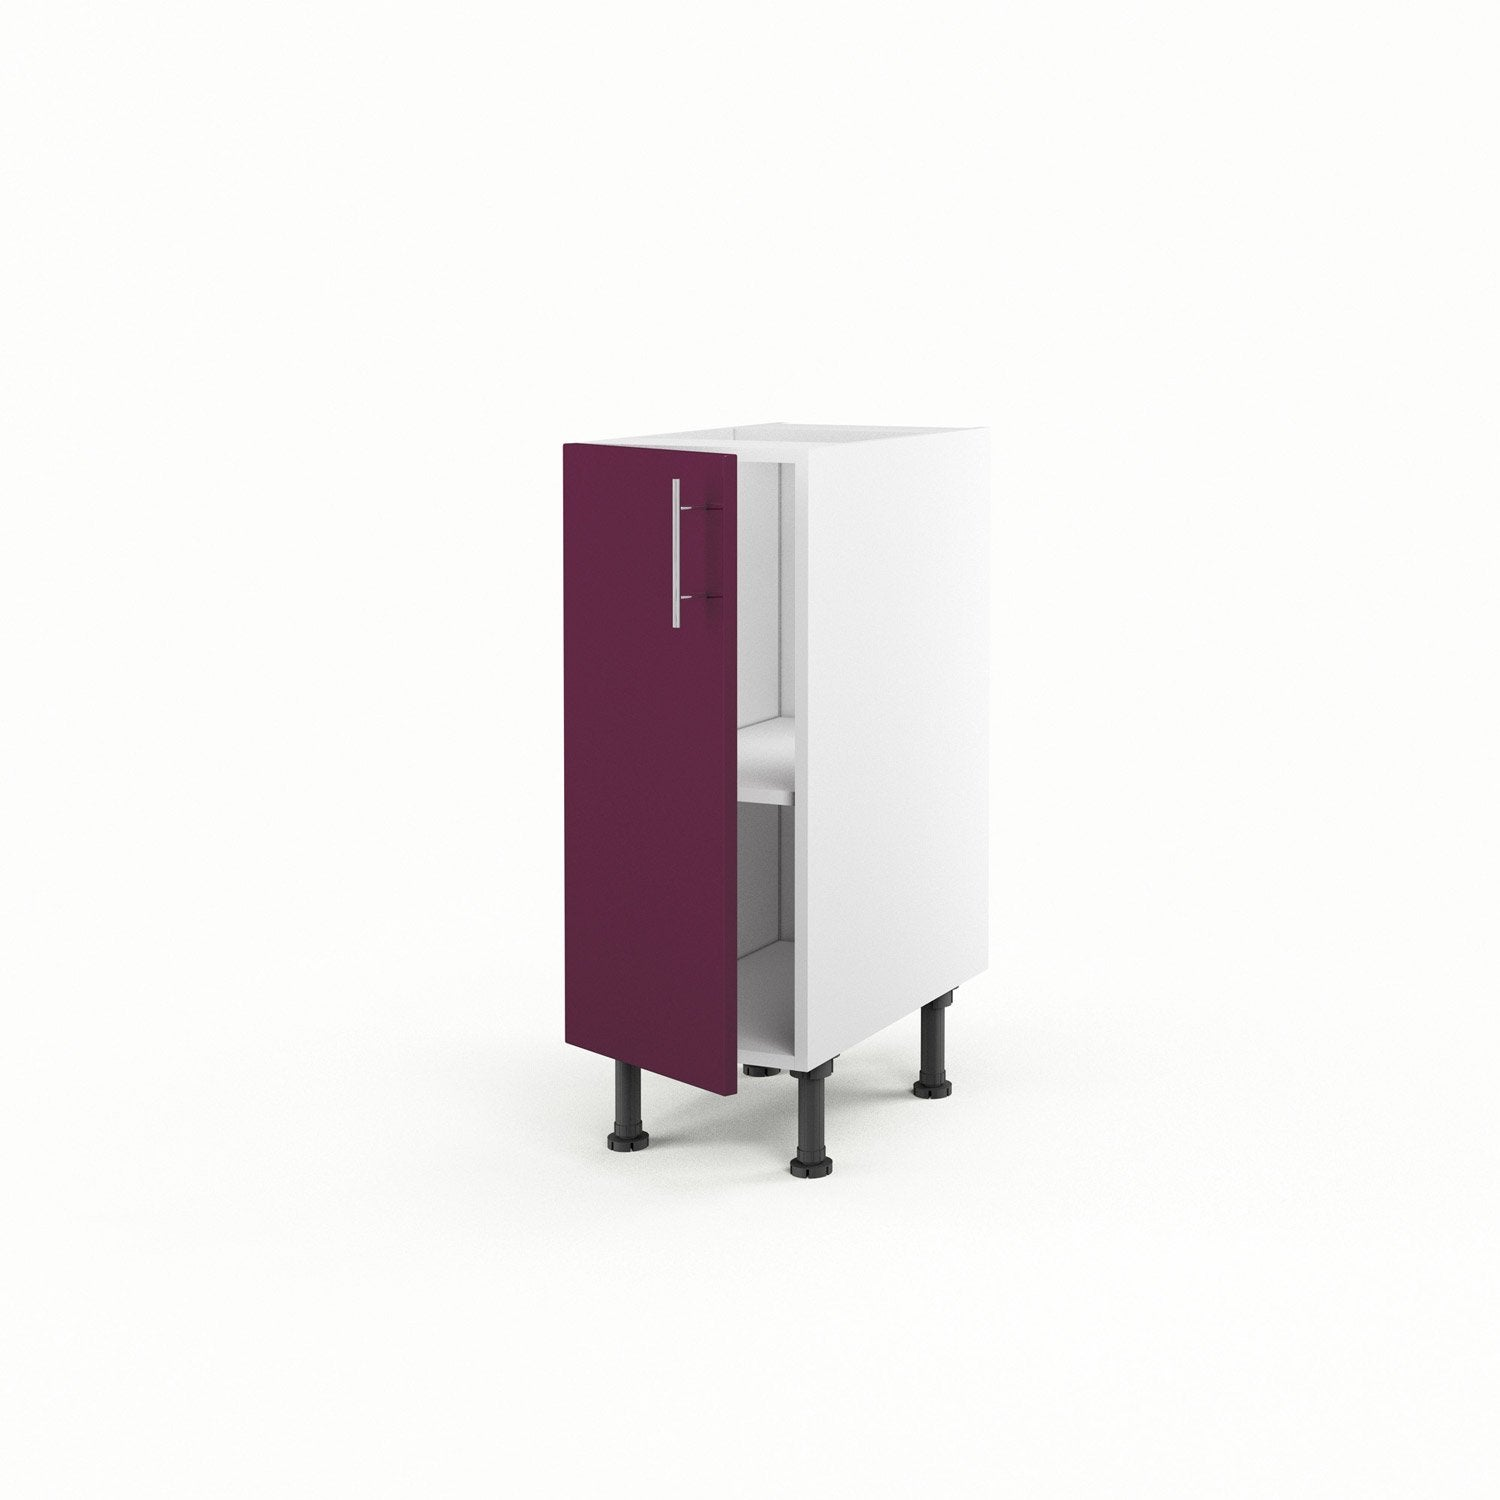 meuble de cuisine bas violet 1 porte rio x x cm leroy merlin. Black Bedroom Furniture Sets. Home Design Ideas